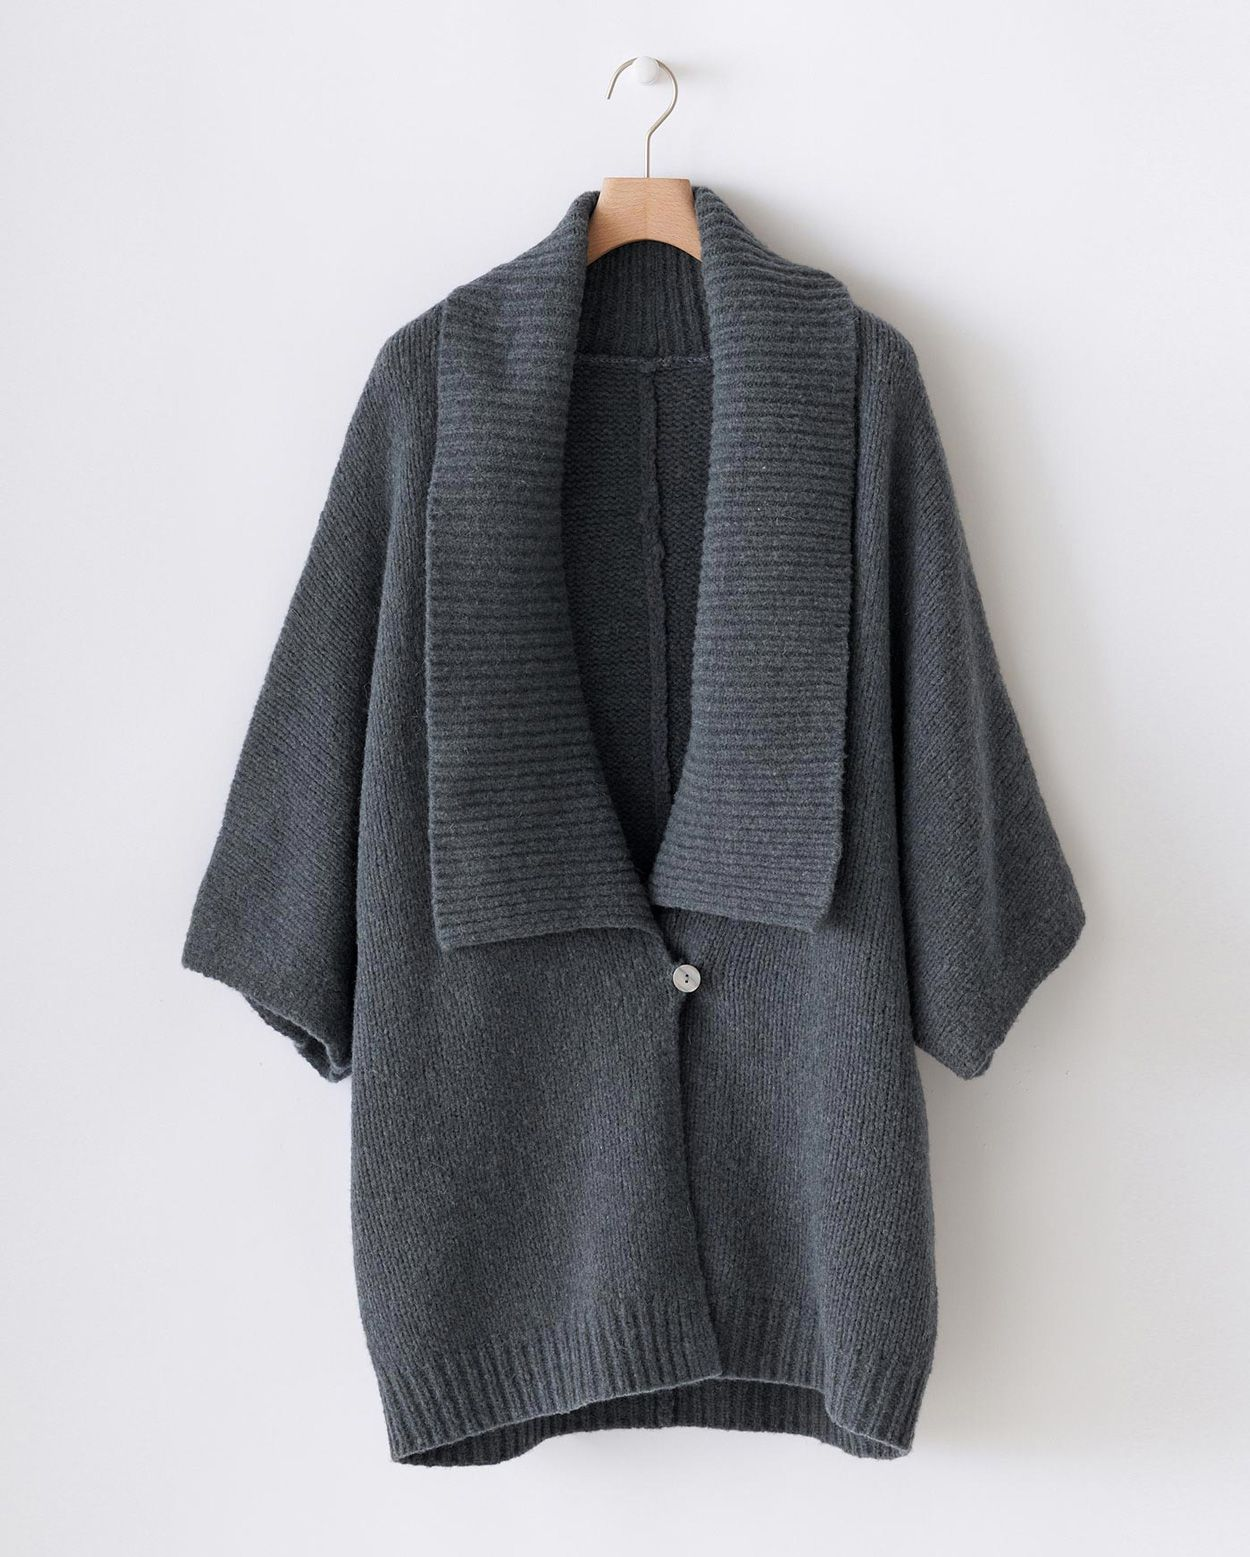 Poetry - Chunky Knit Jacket | knit | Pinterest | Sweater cardigan ...